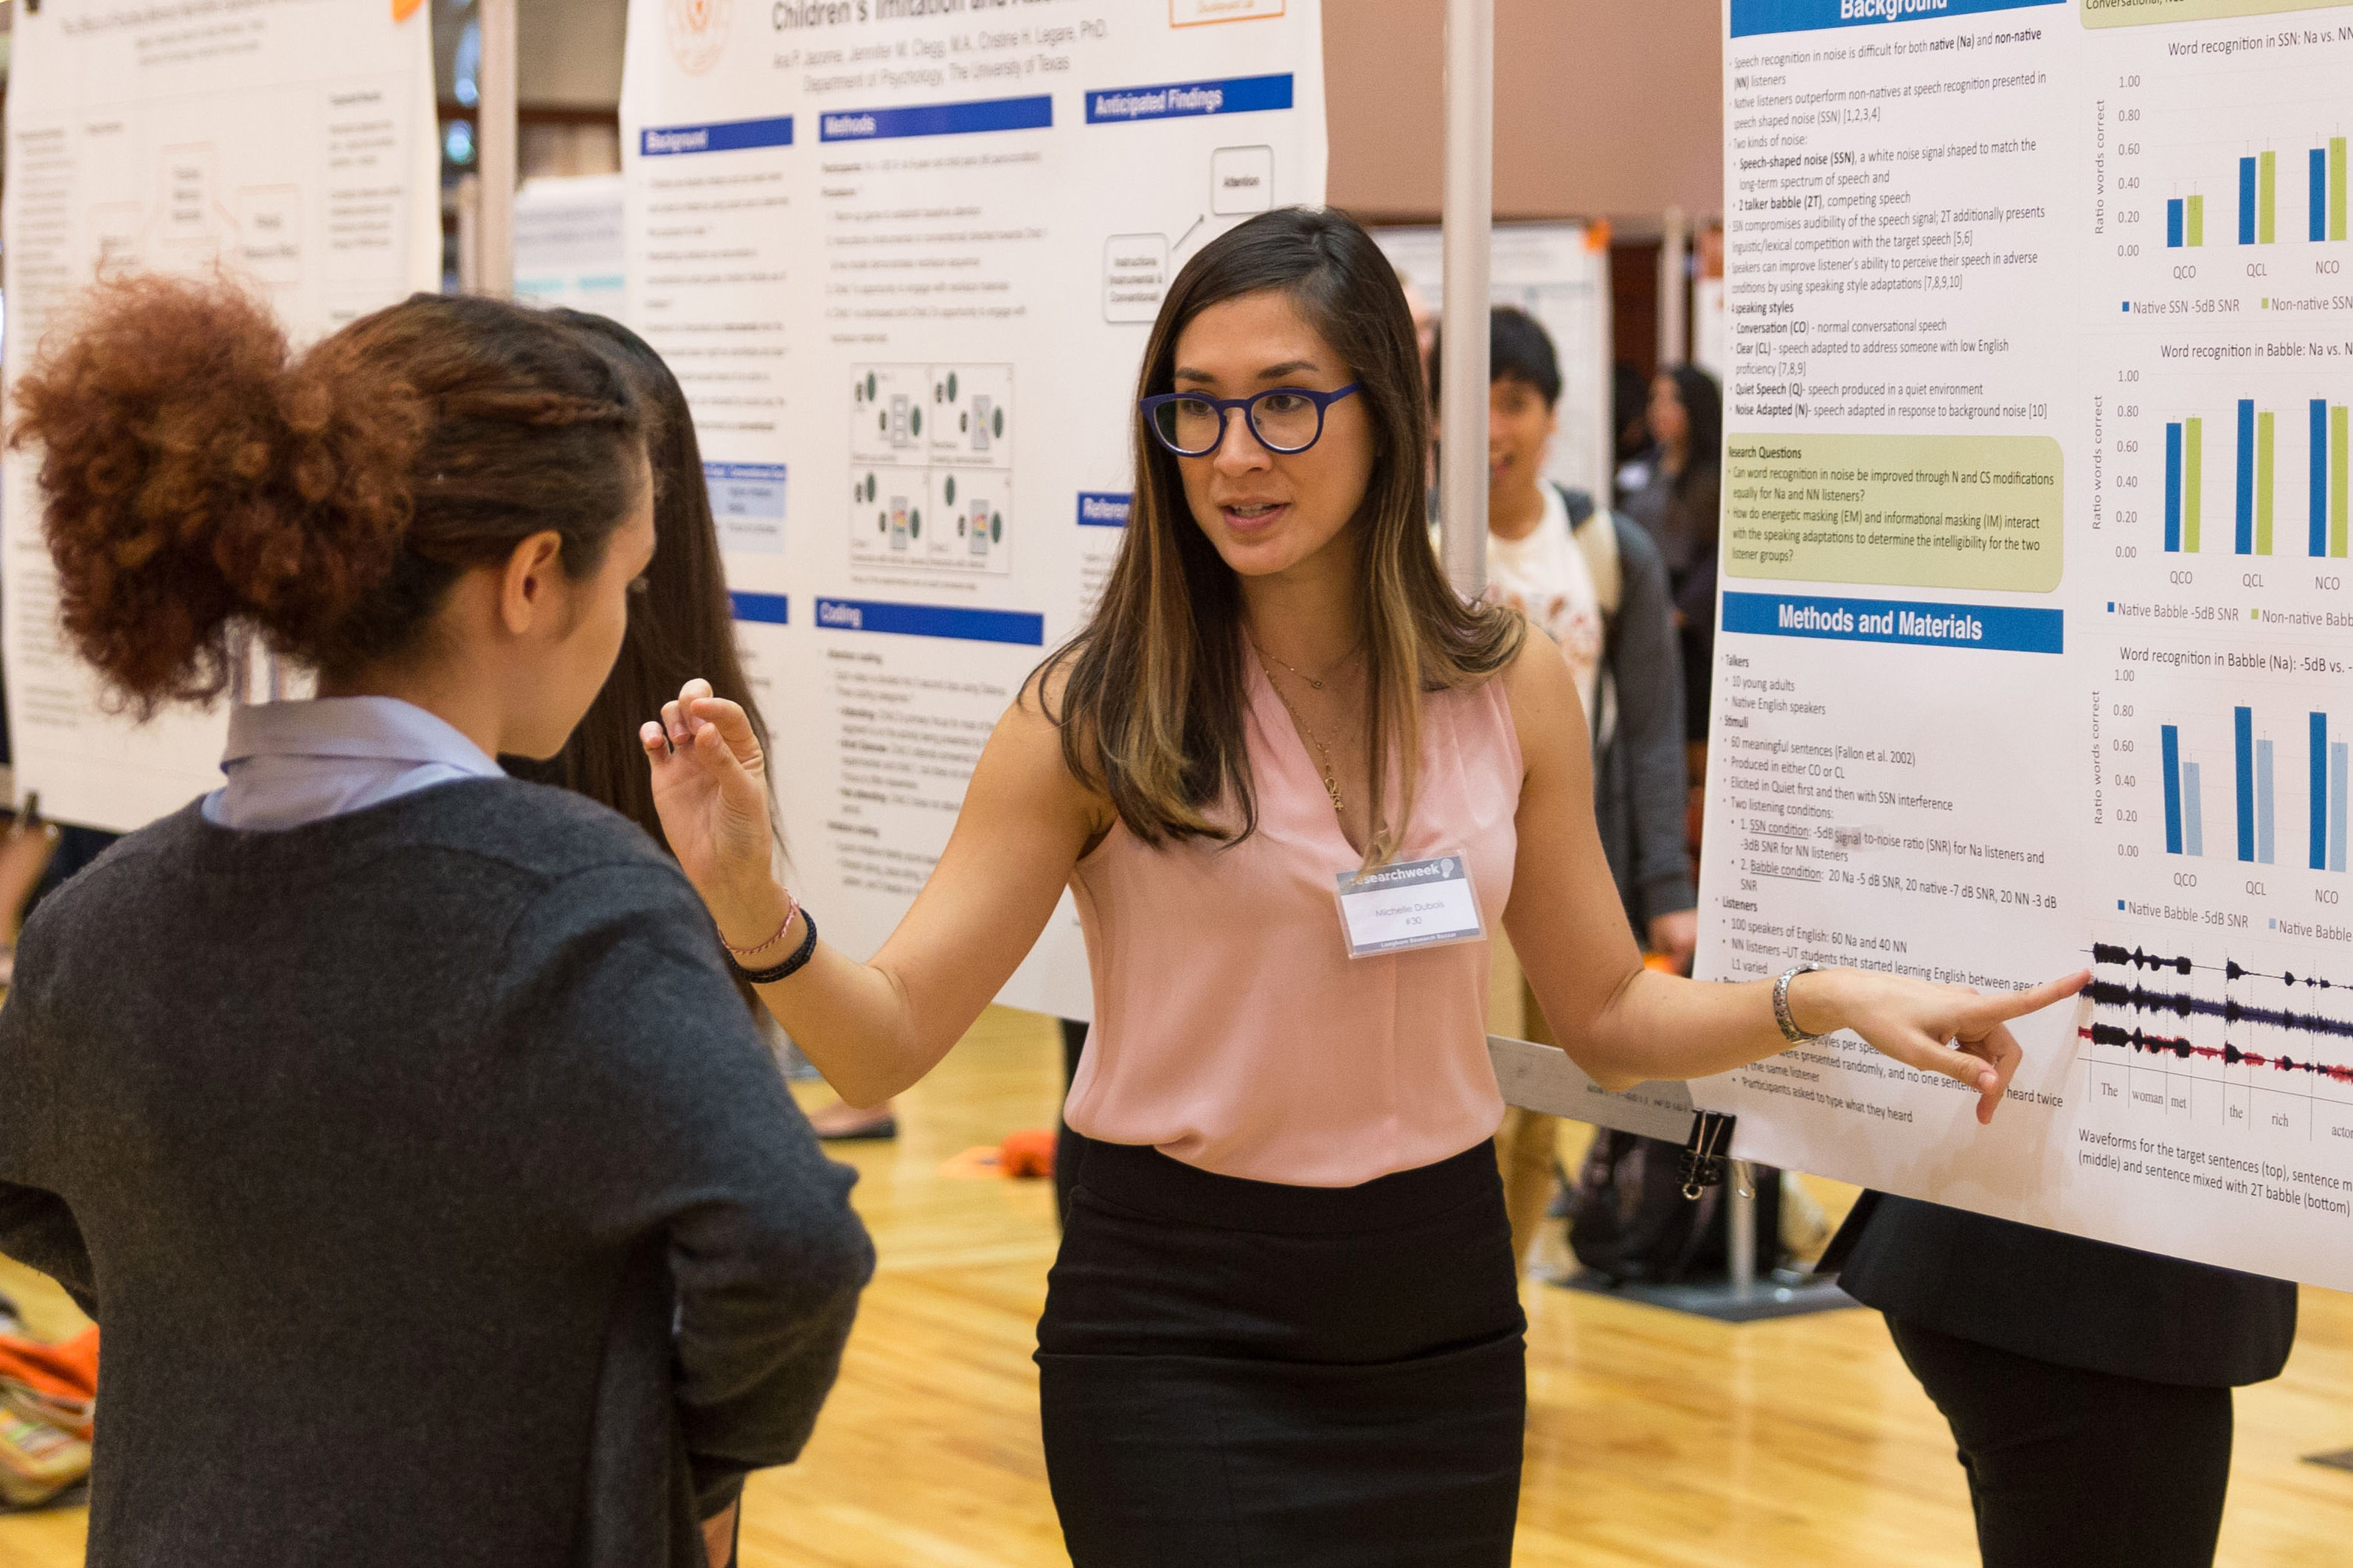 Submit an Abstract for the Longhorn Research Poster Session